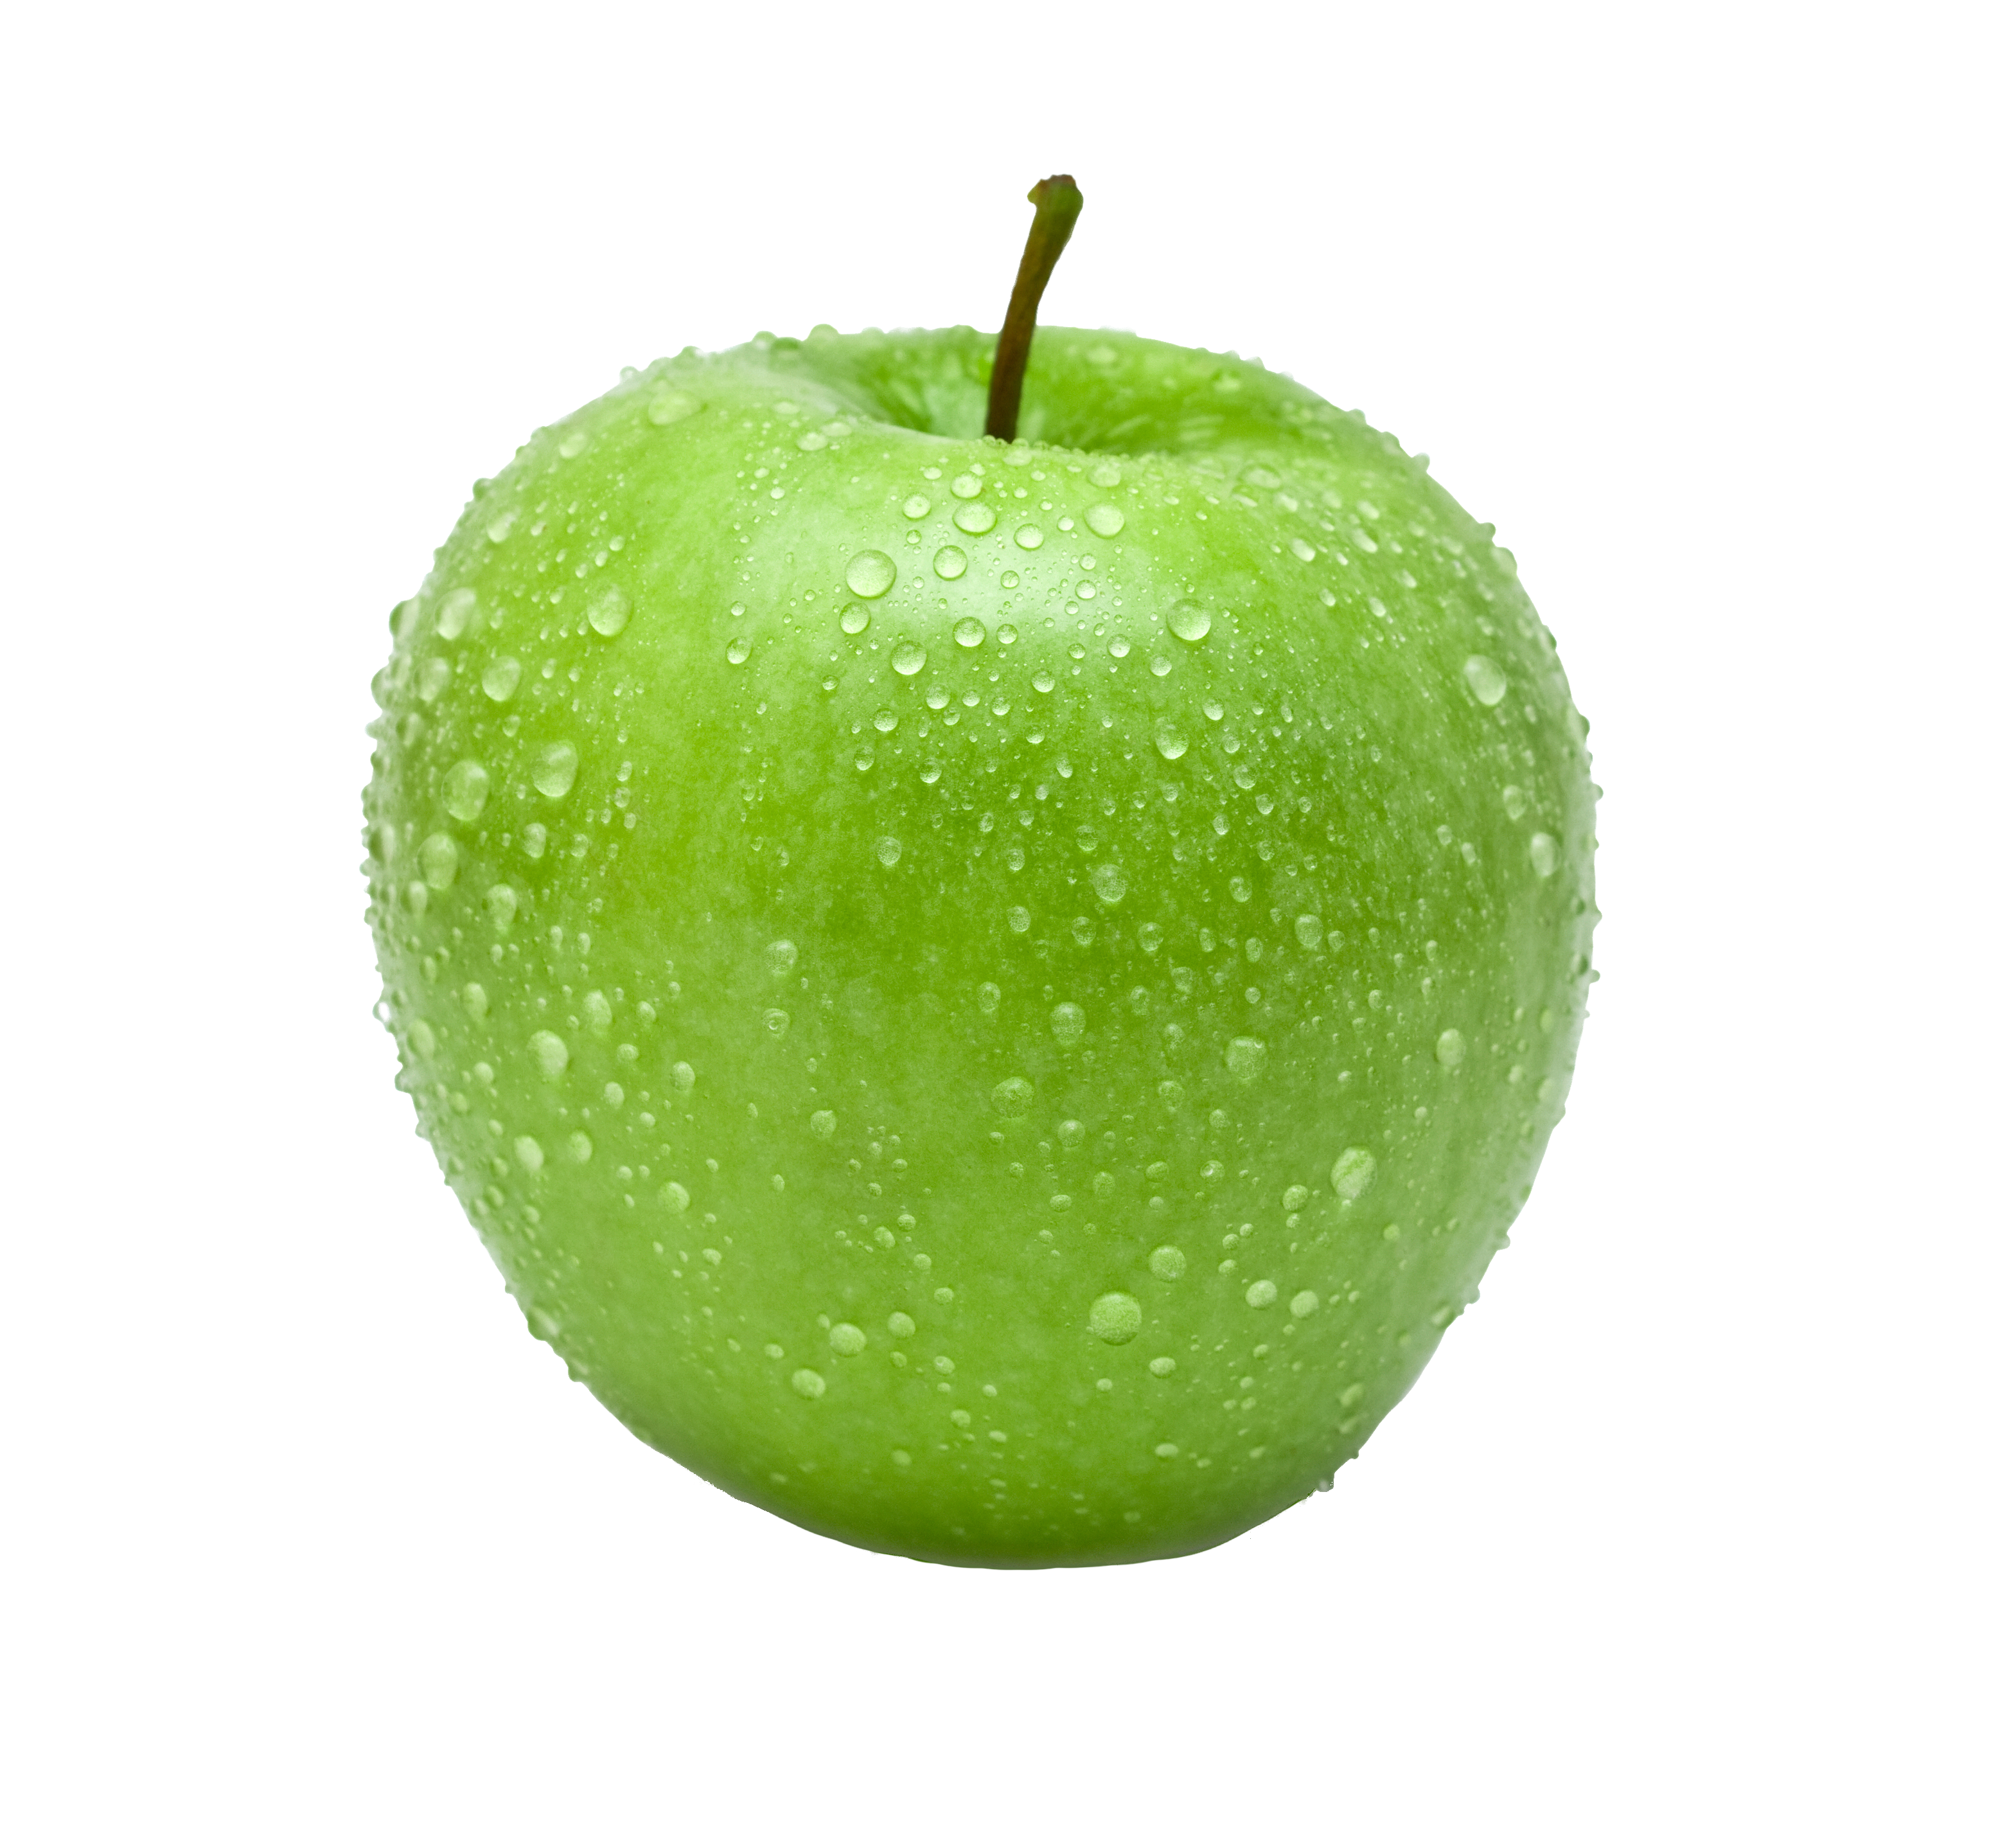 Apple s image purepng. Green apples png picture royalty free stock